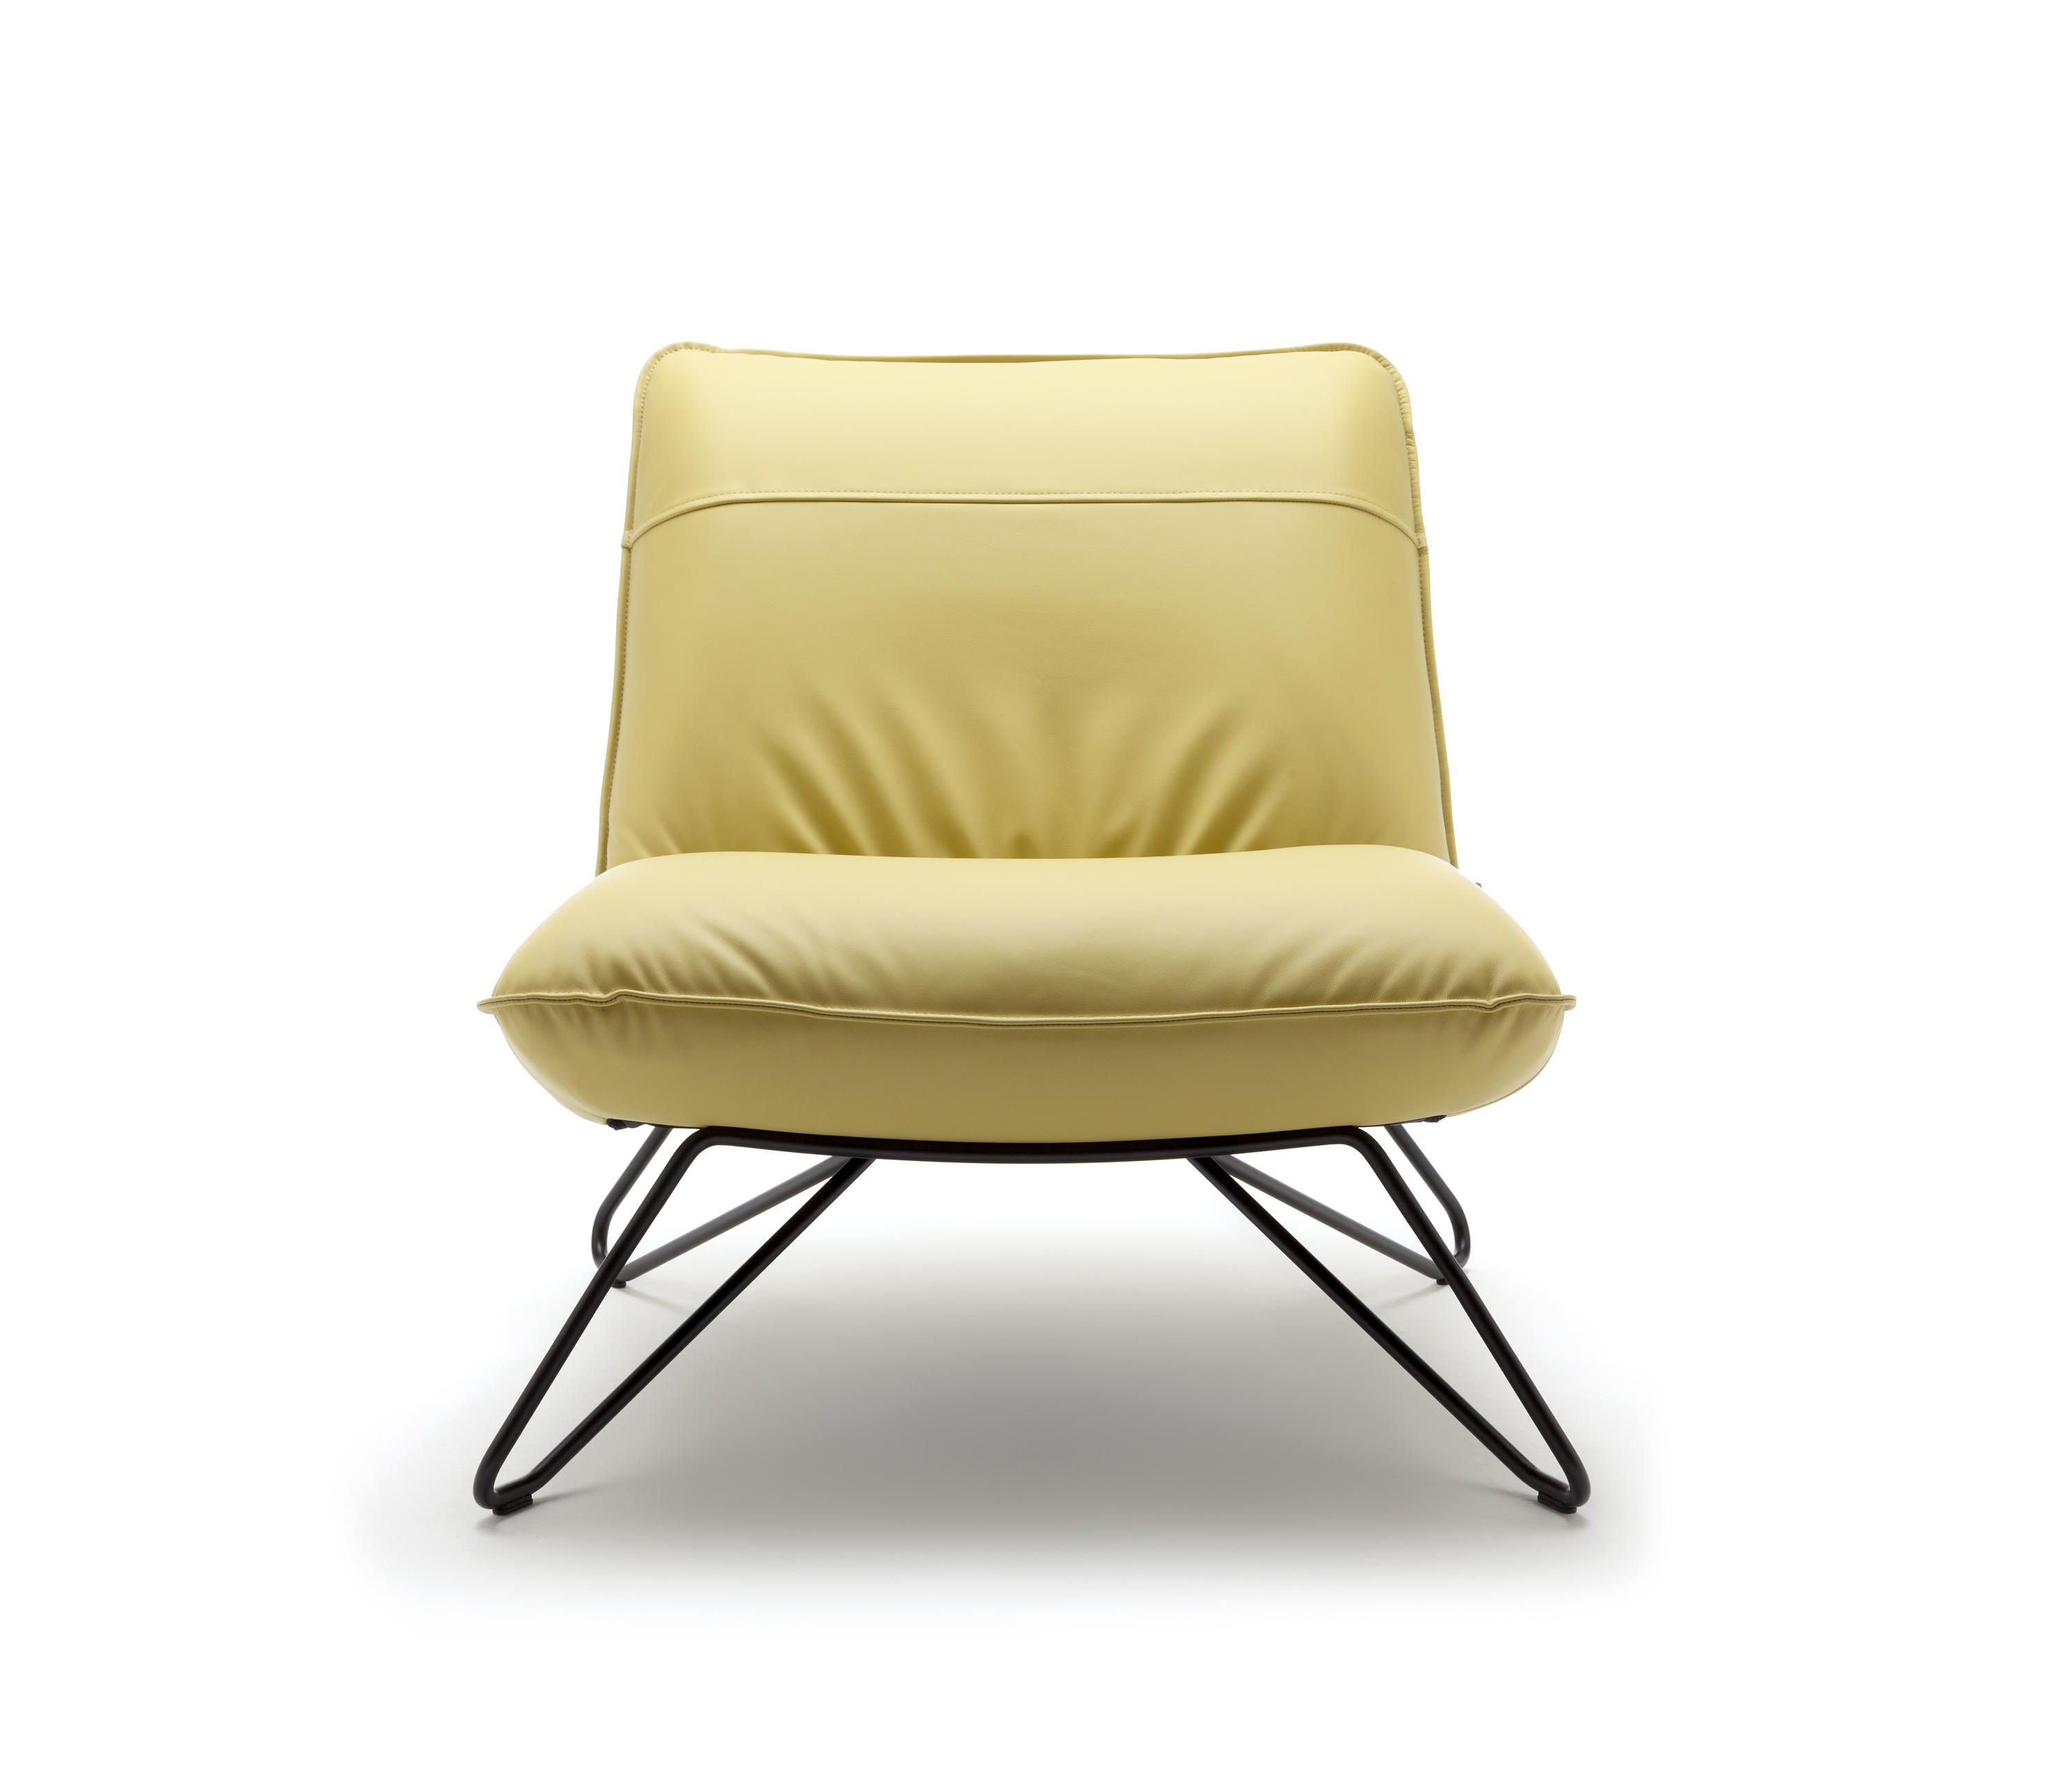 Rolf benz 394 lounge chairs from rolf benz architonic for Sessel 394 rolf benz